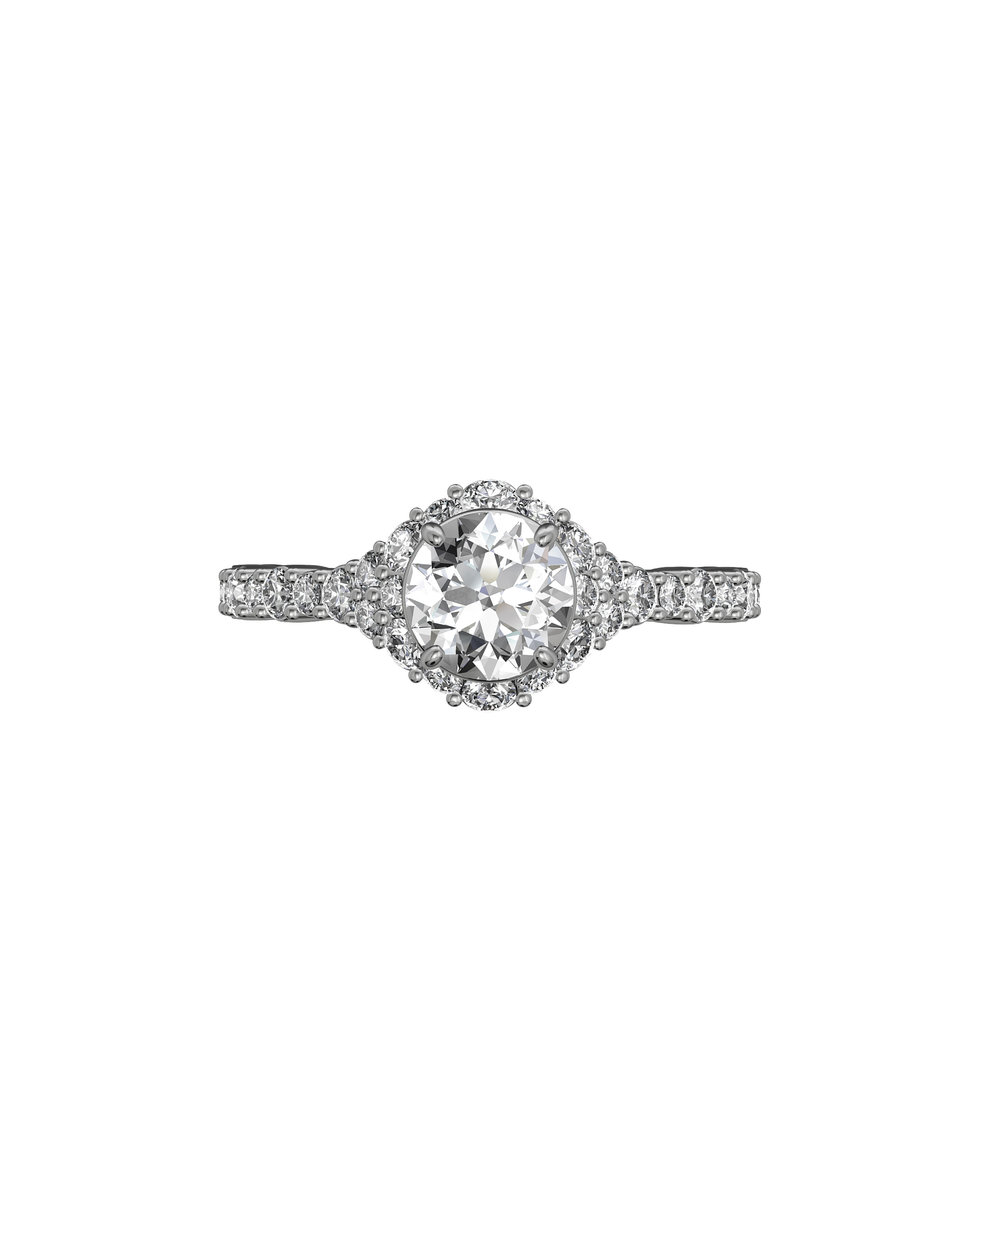 designer diamond bridal jewelry--26.jpg